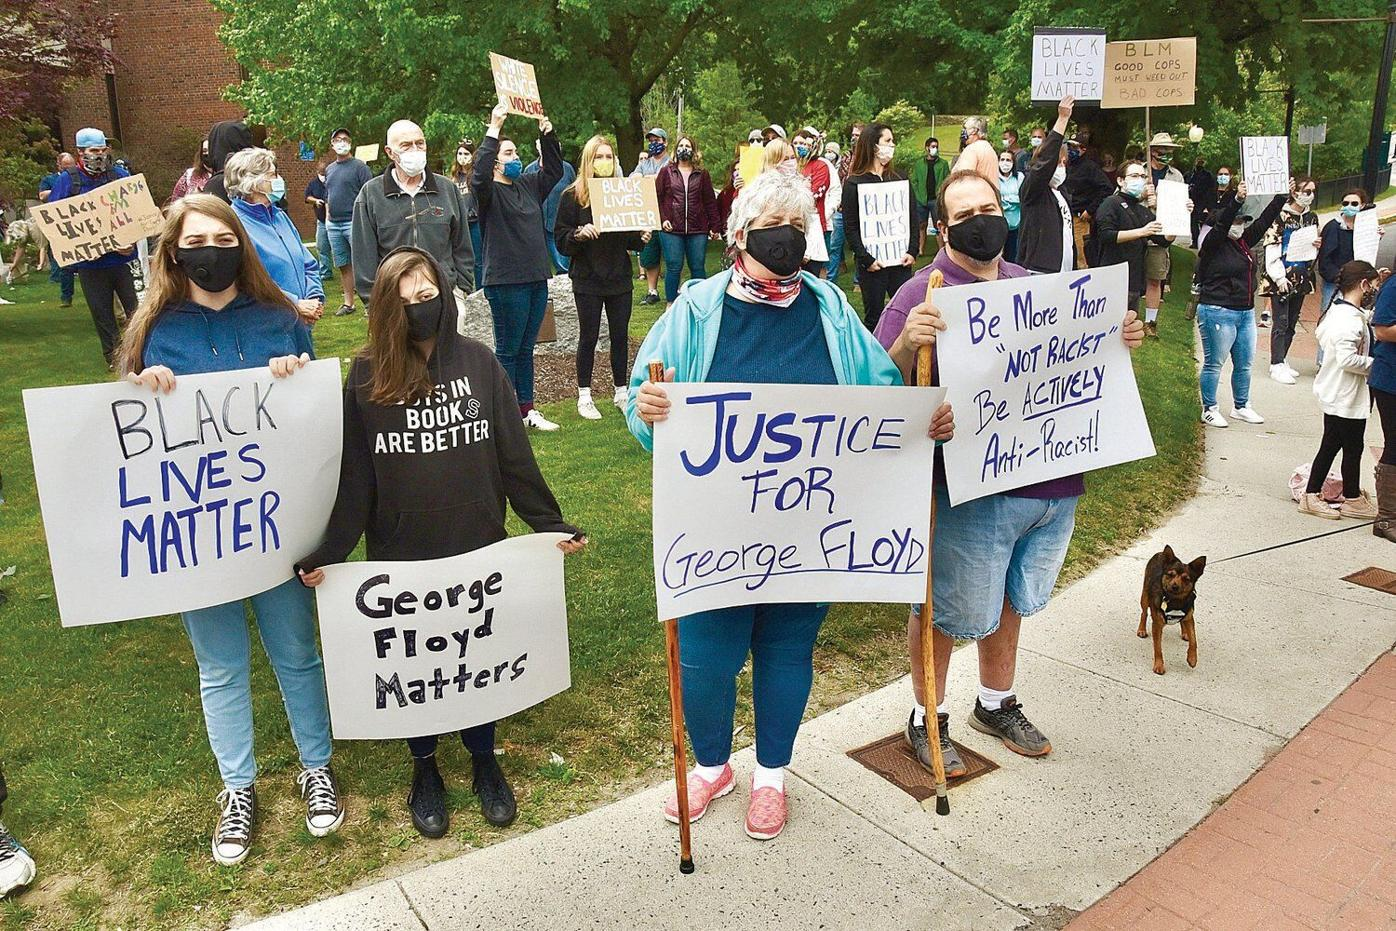 'Make the change': Hundreds protest in the Berkshires over death of George Floyd